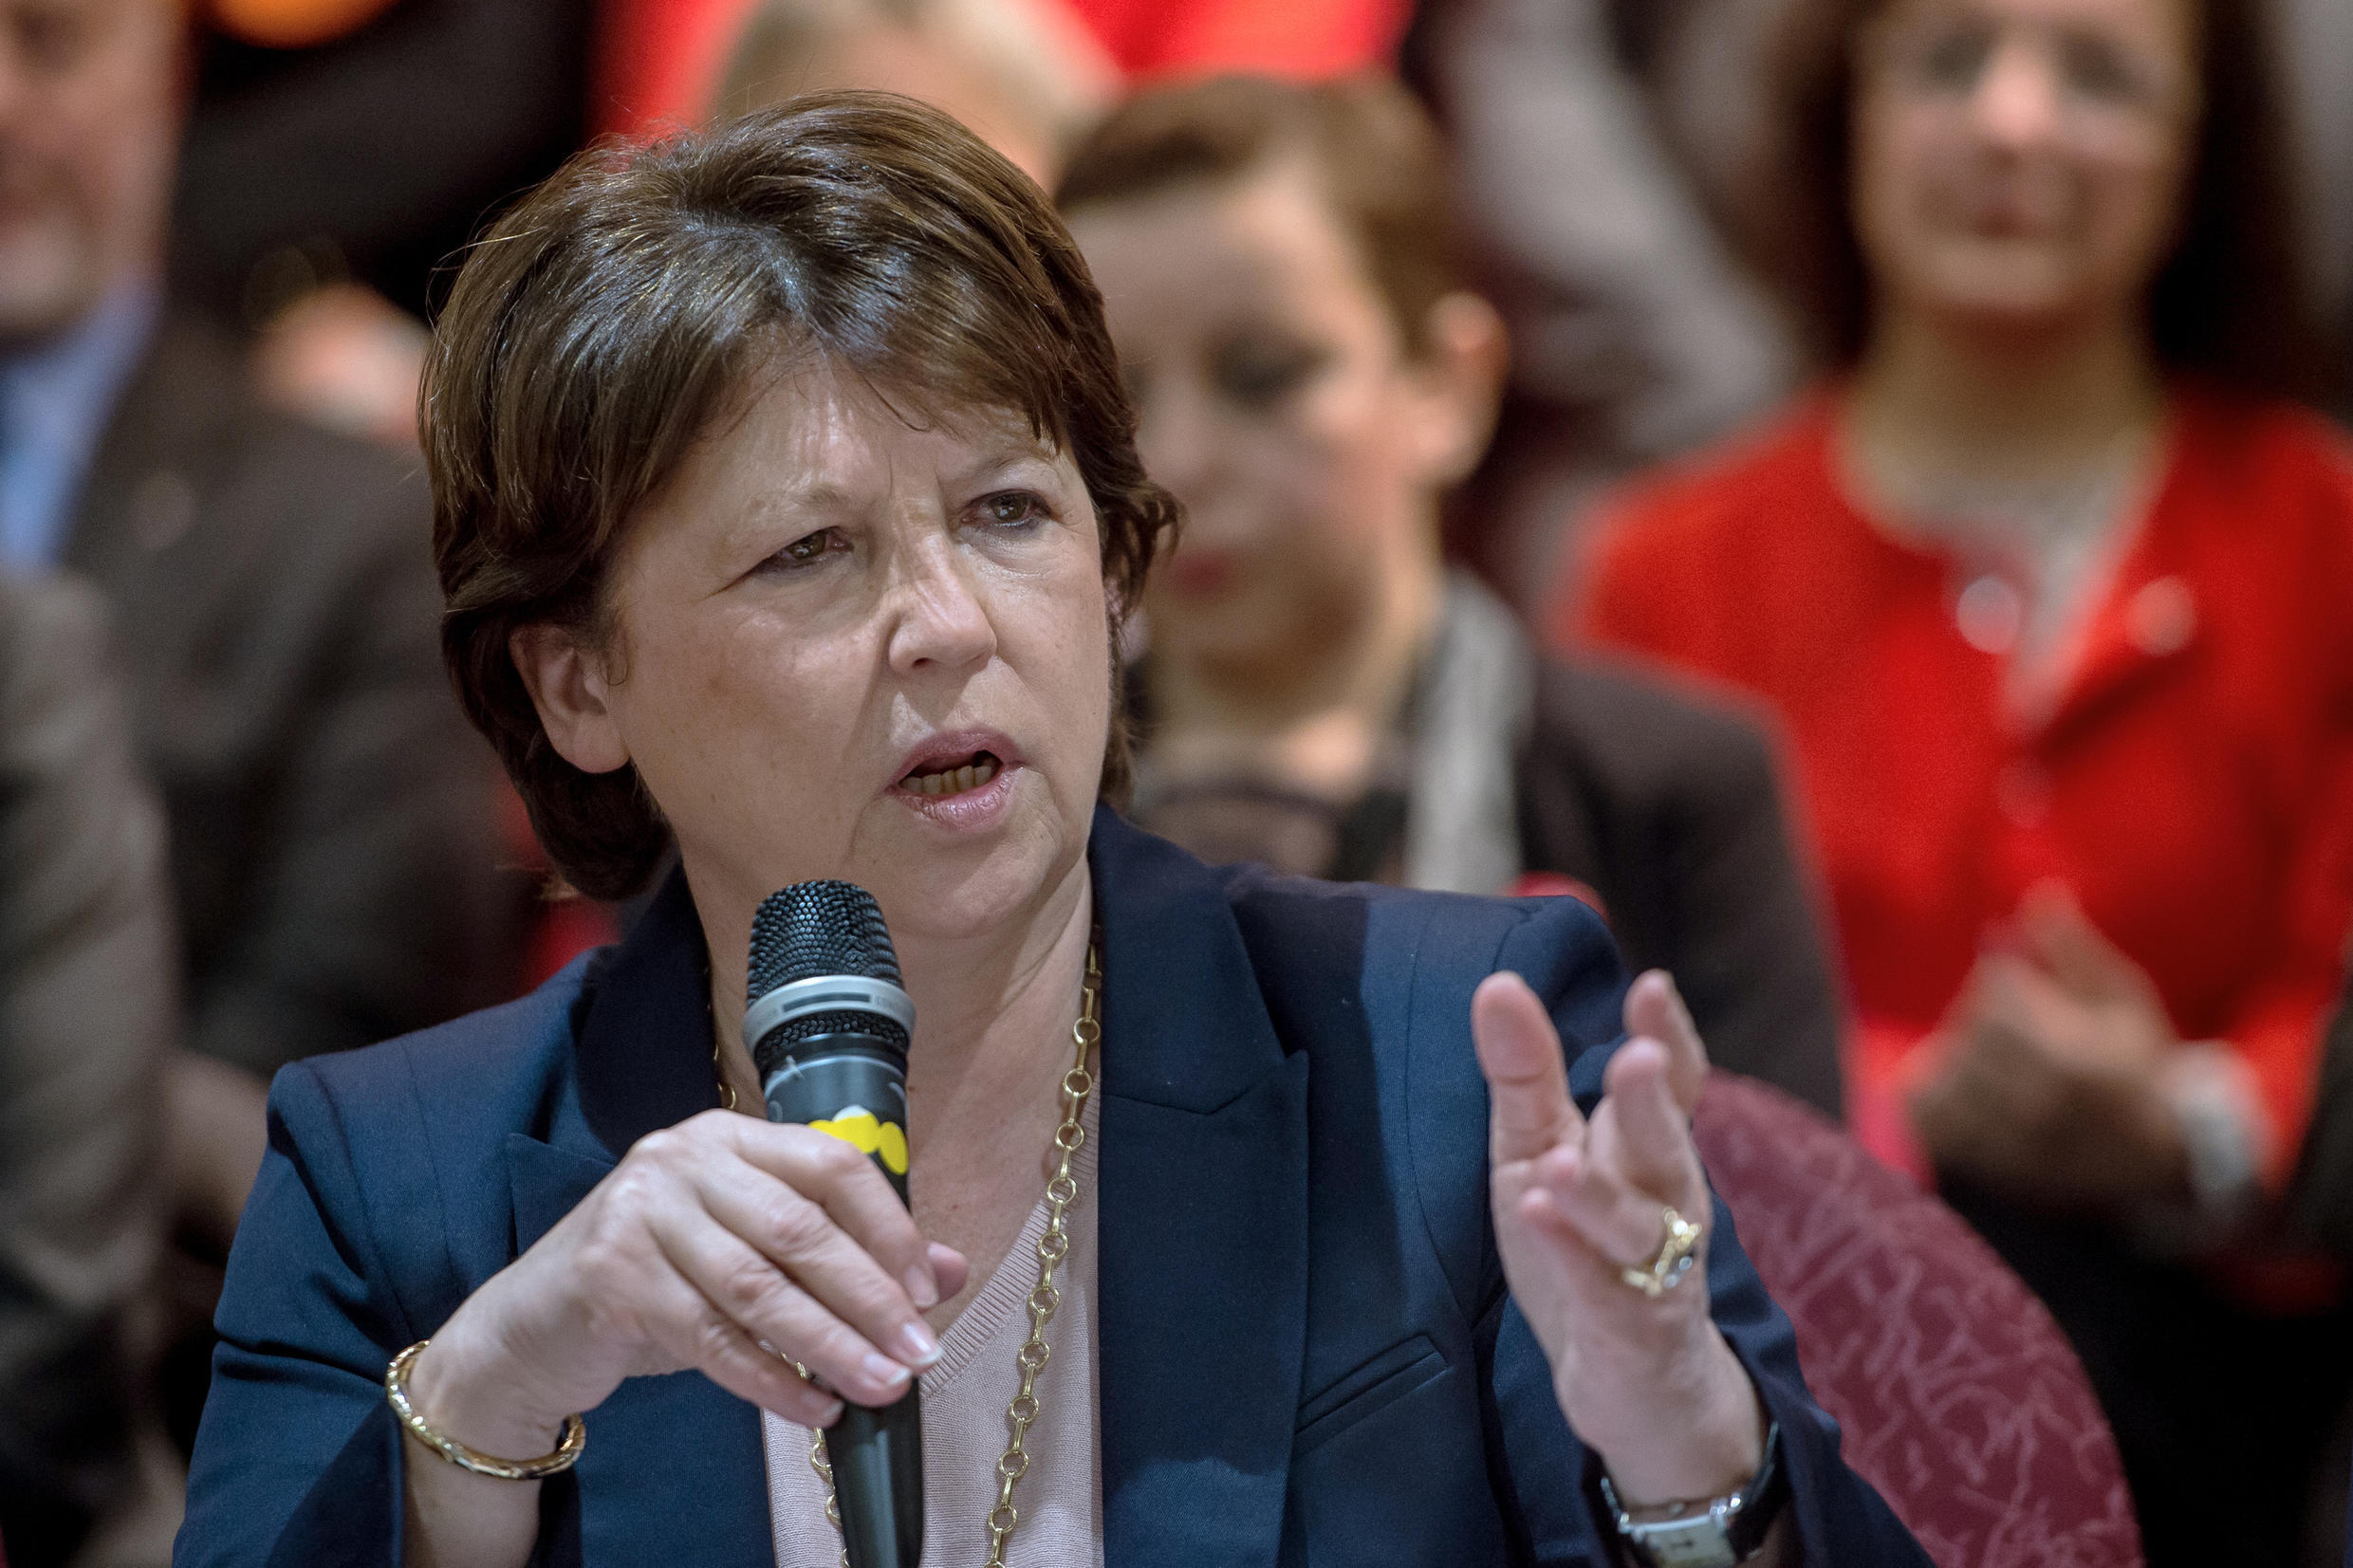 Lille mayor and former labour minister Martine Aubry in Lille, March 9 2015